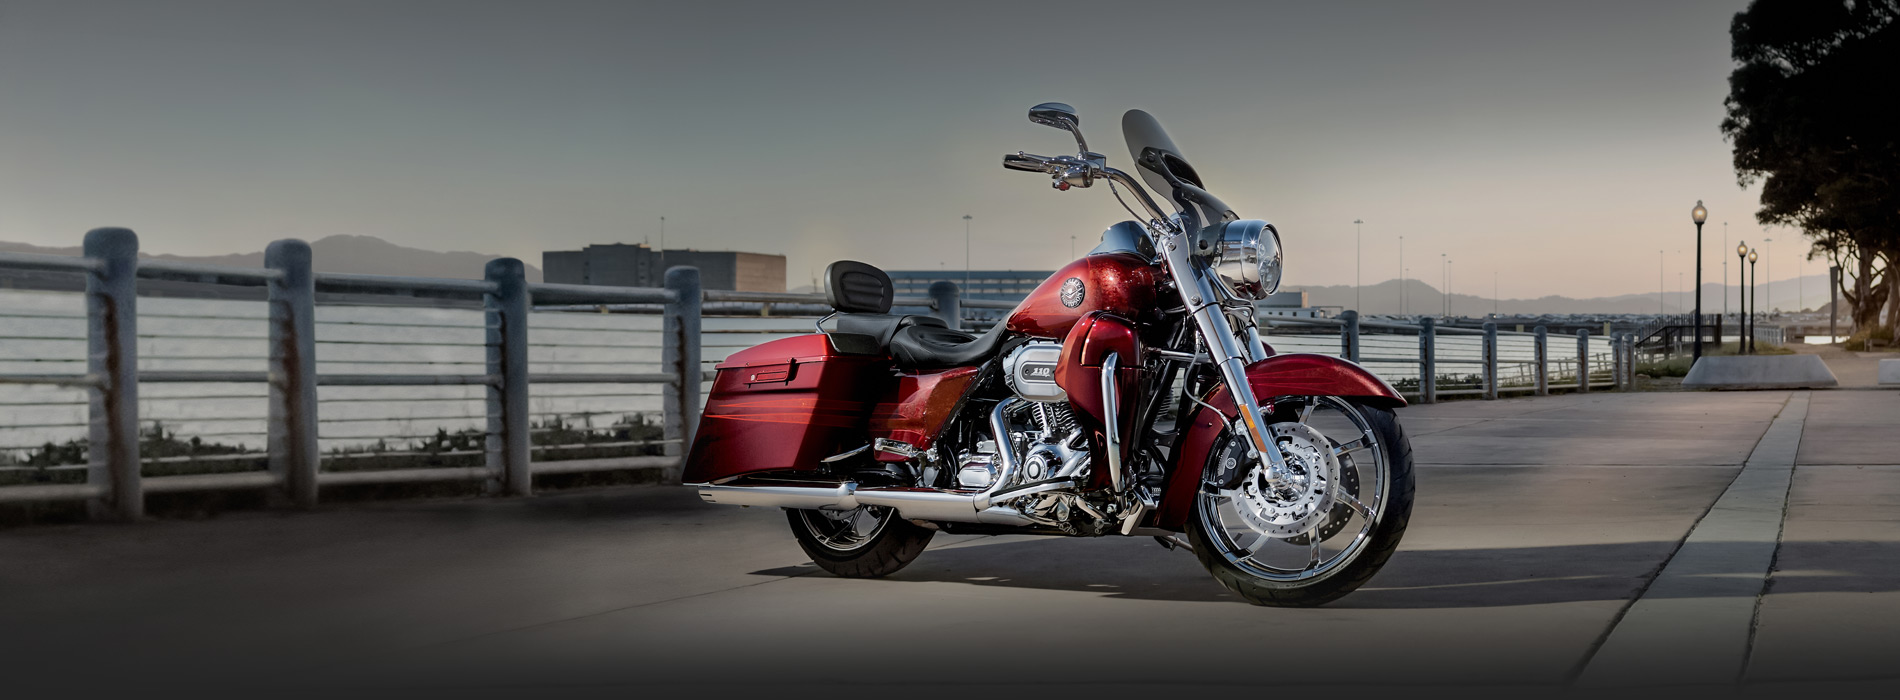 Harley-Davidson CVO Road King 2013 #11